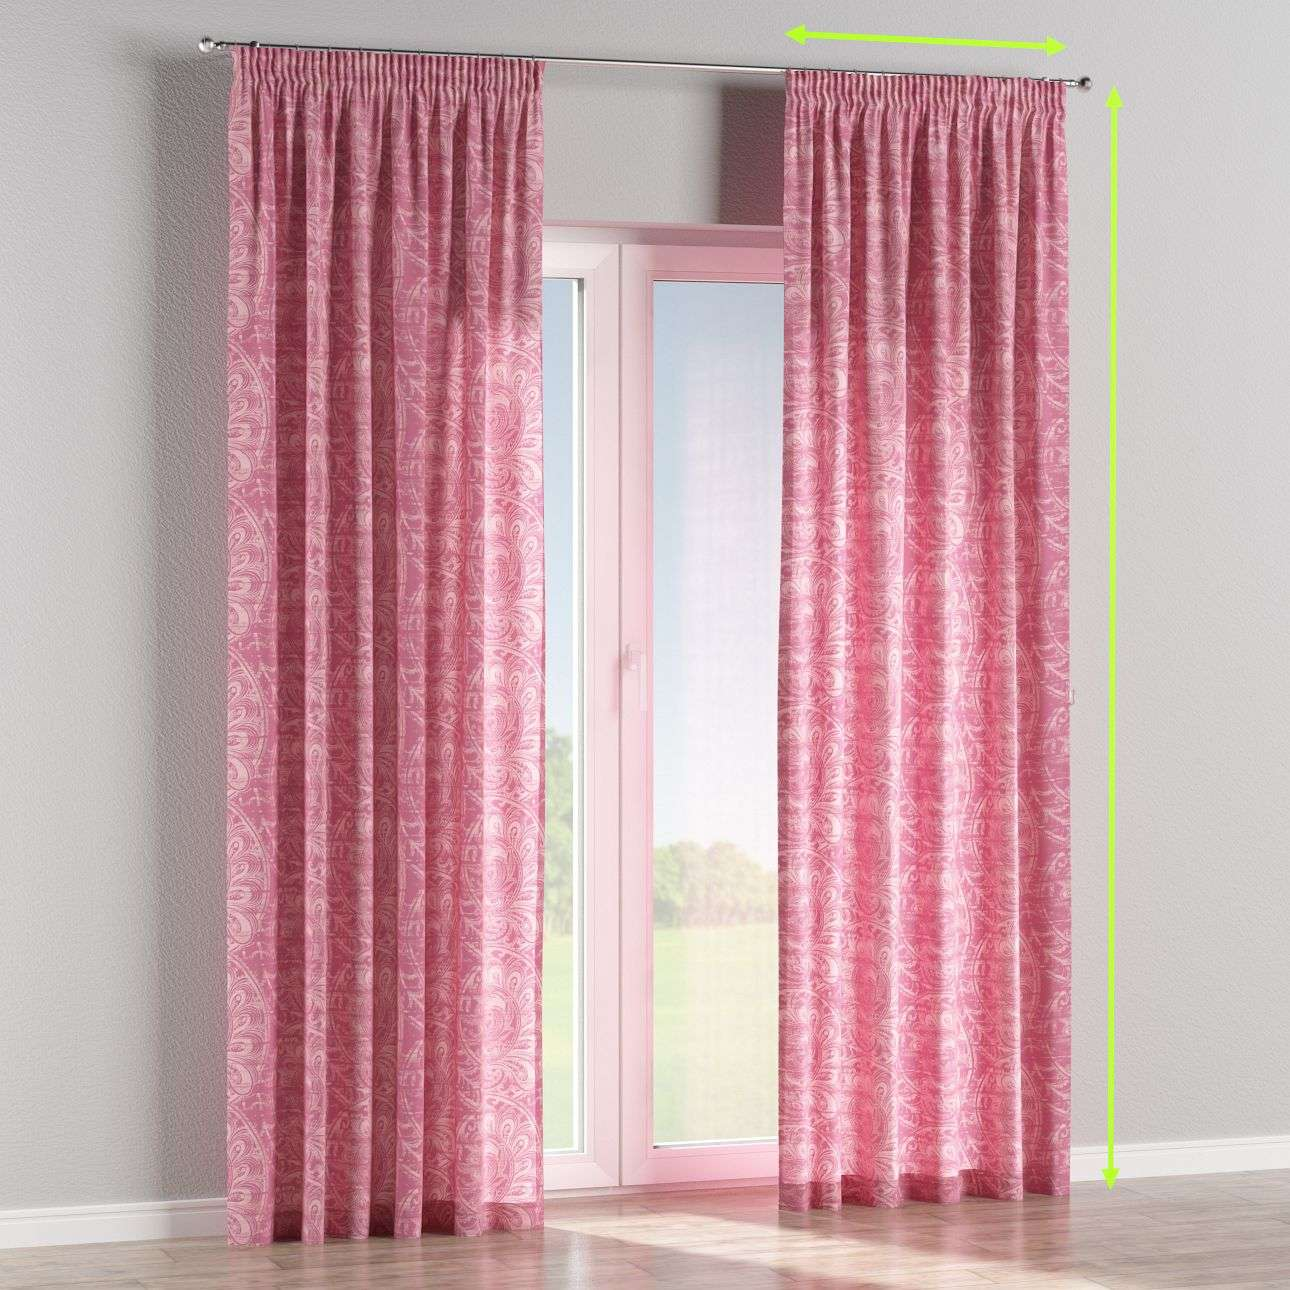 Pencil pleat lined curtains in collection Mirella, fabric: 143-07